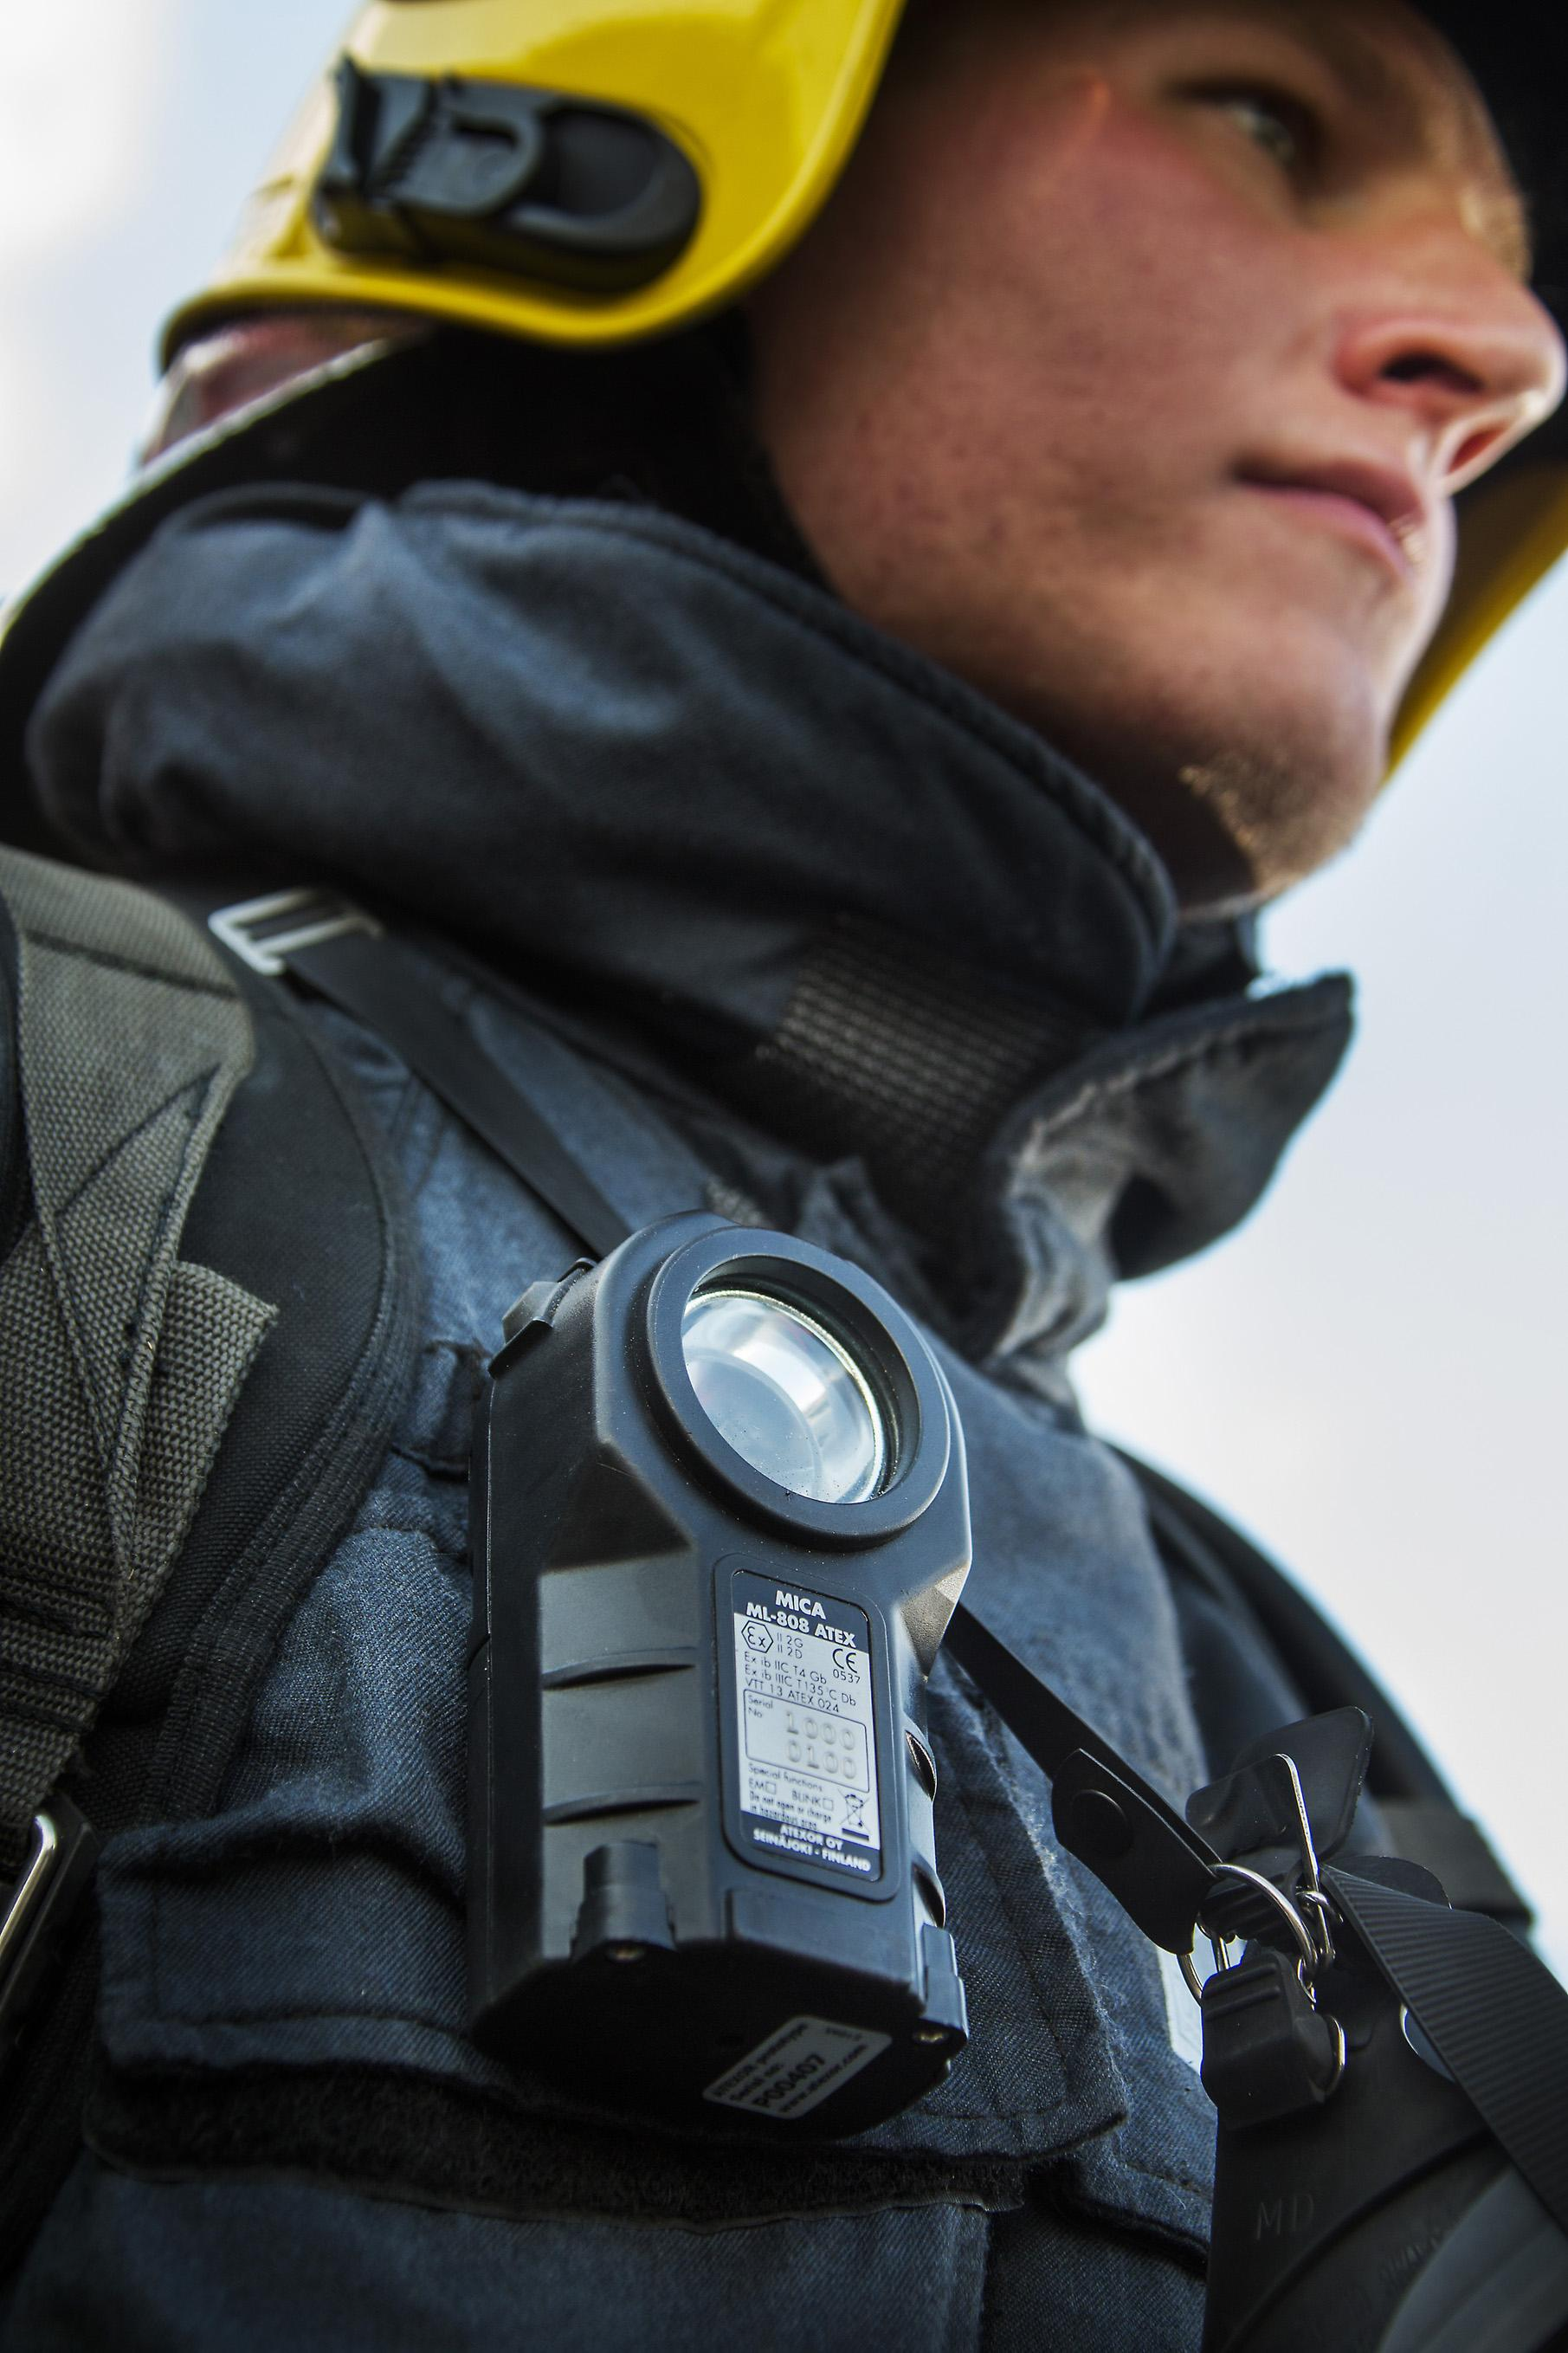 MICA ML-808 ATEX handlamp installed to firefighters harness.